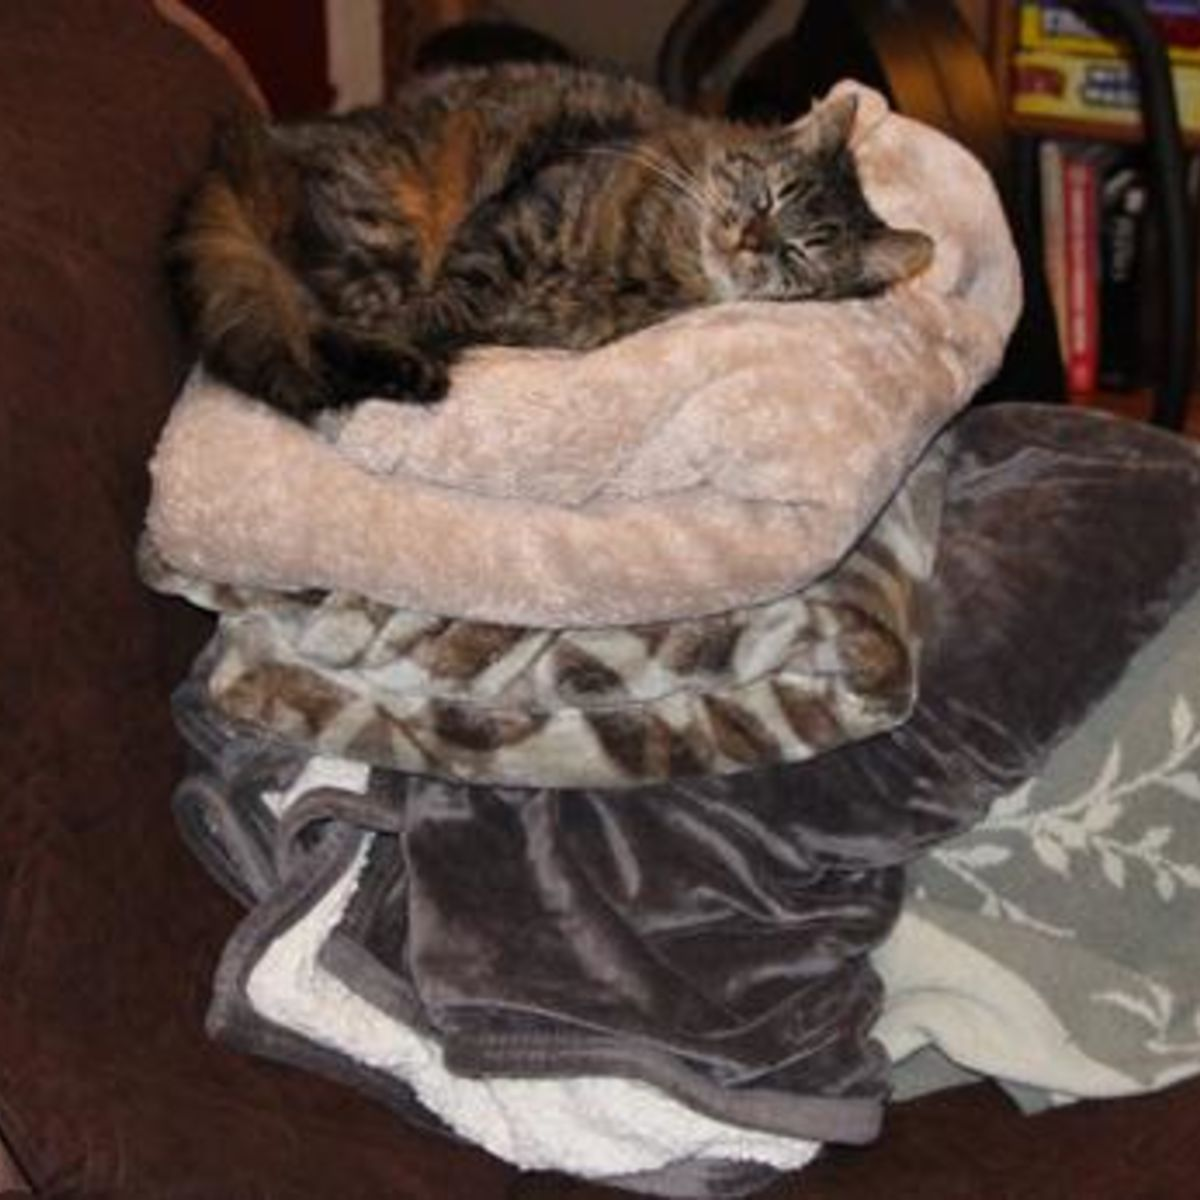 caturday_blankets.jpg.CROP.rectangle-large.jpg